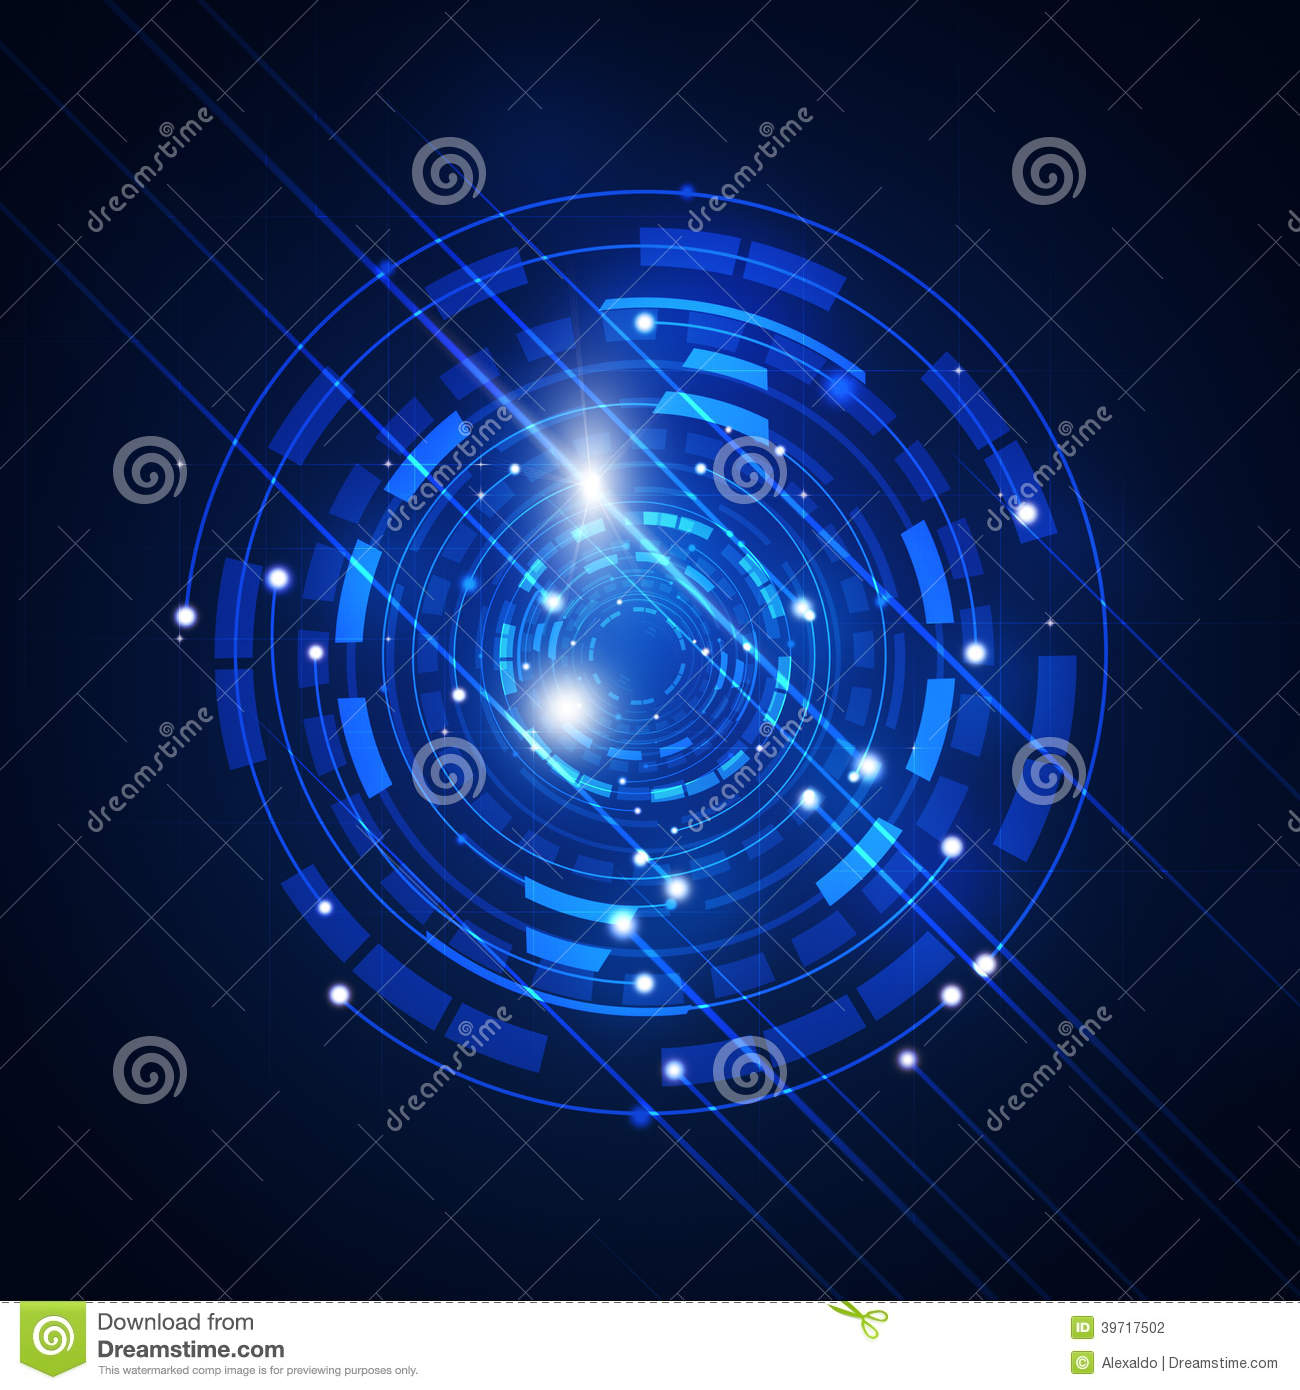 abstract background blur circle - photo #10